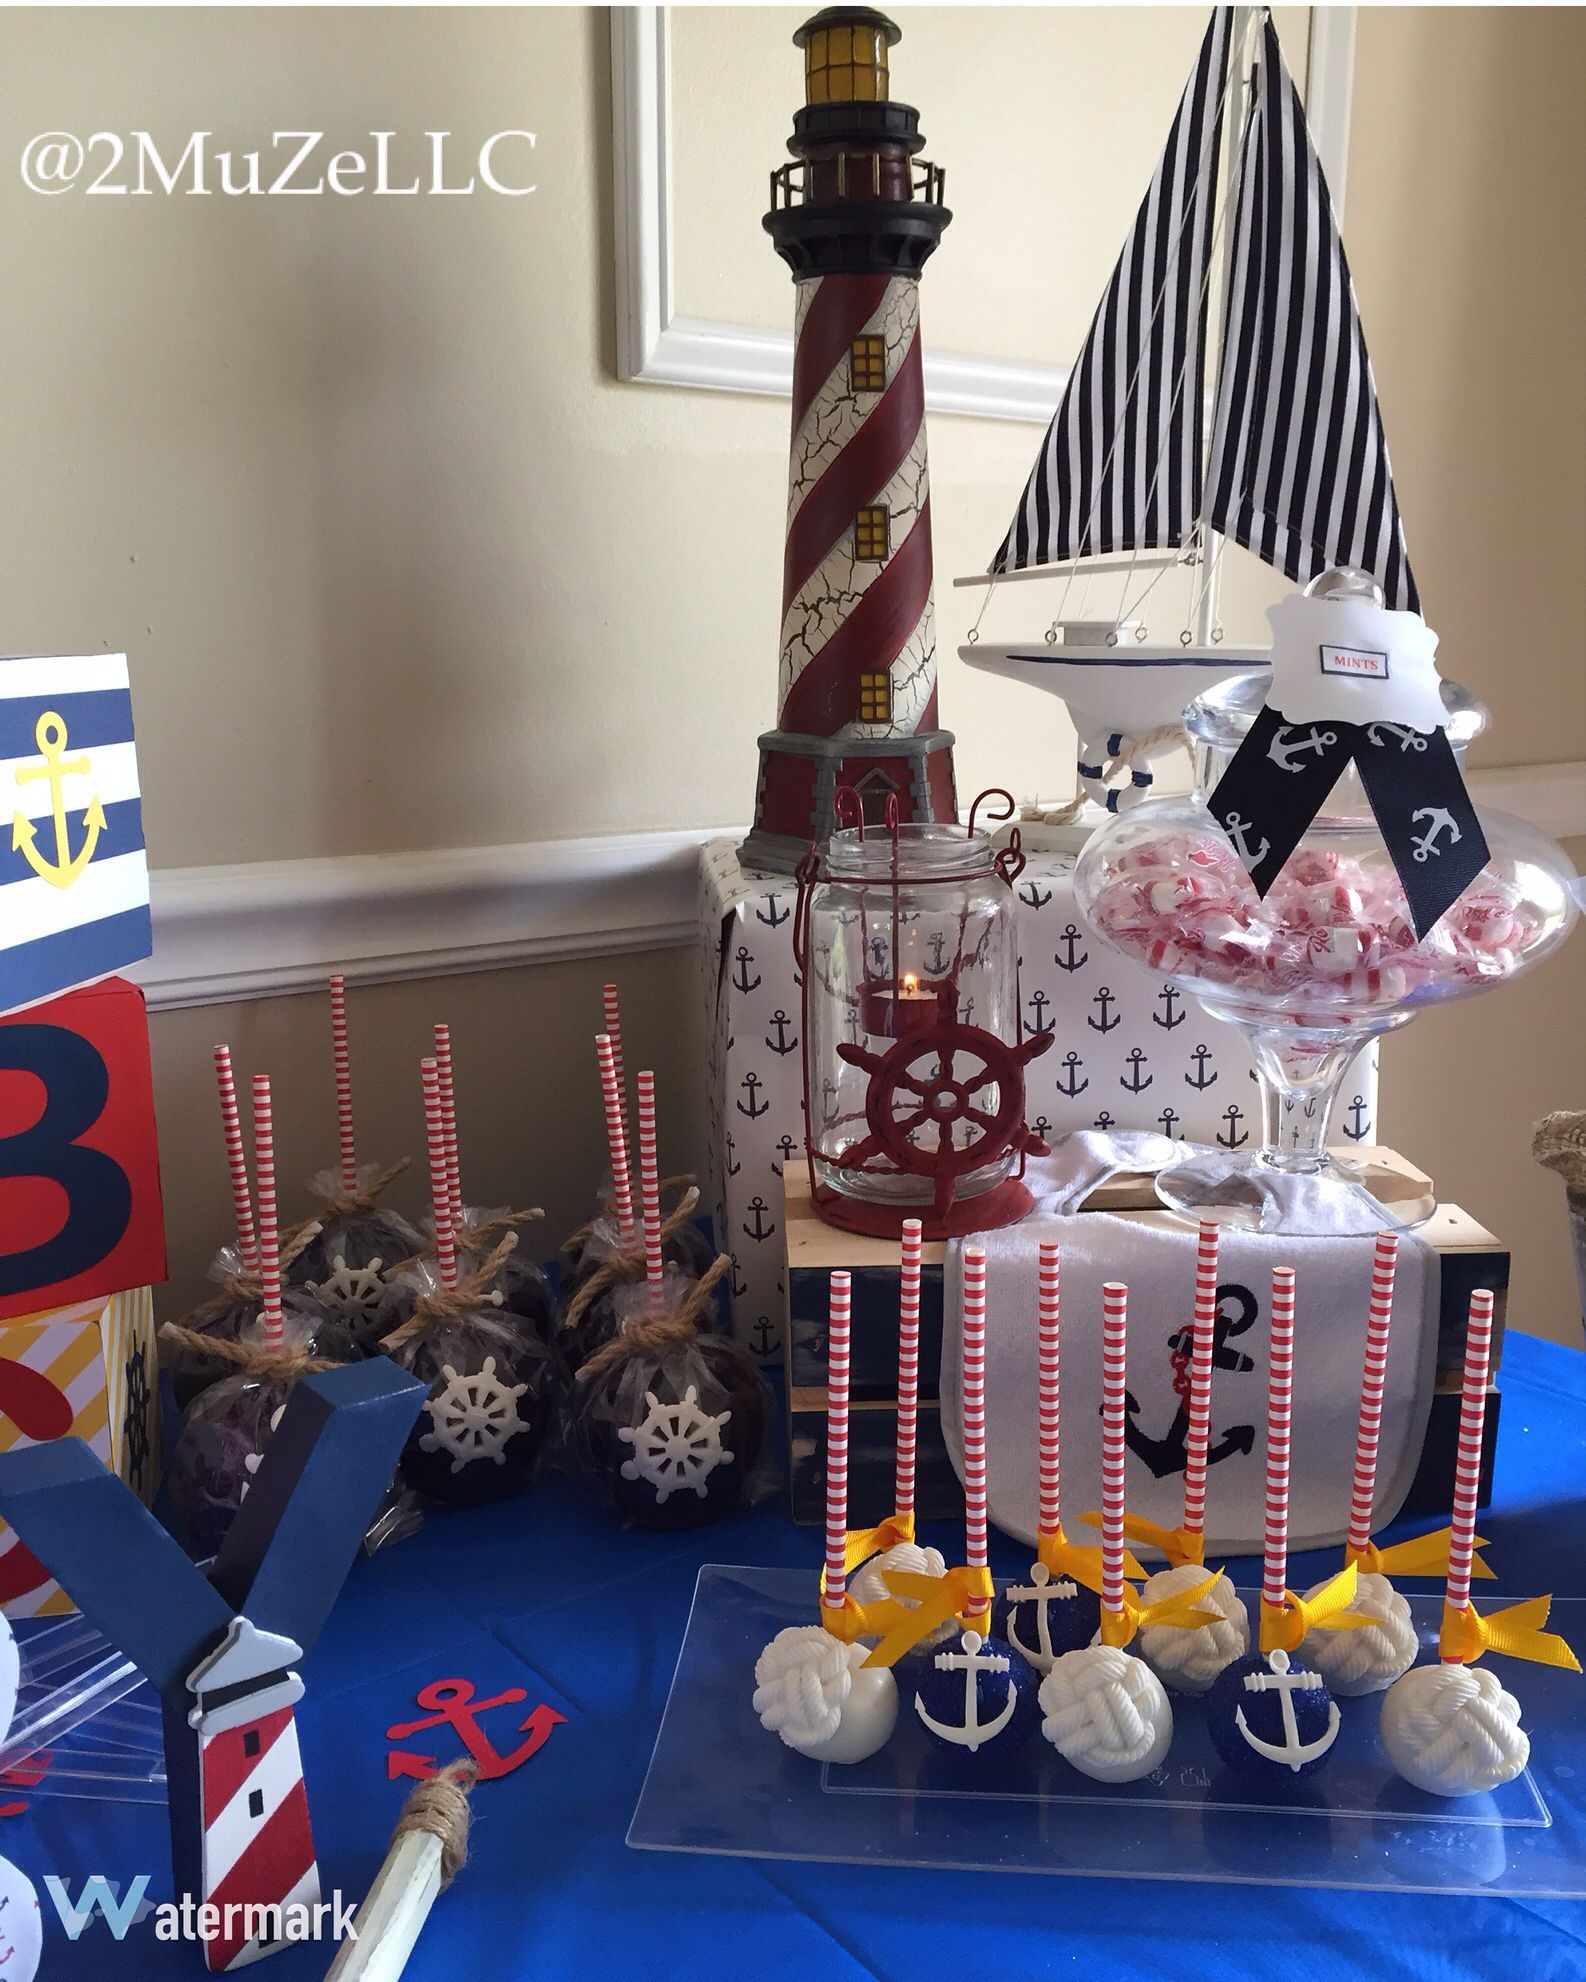 Nautical themed candy apples & cakepops